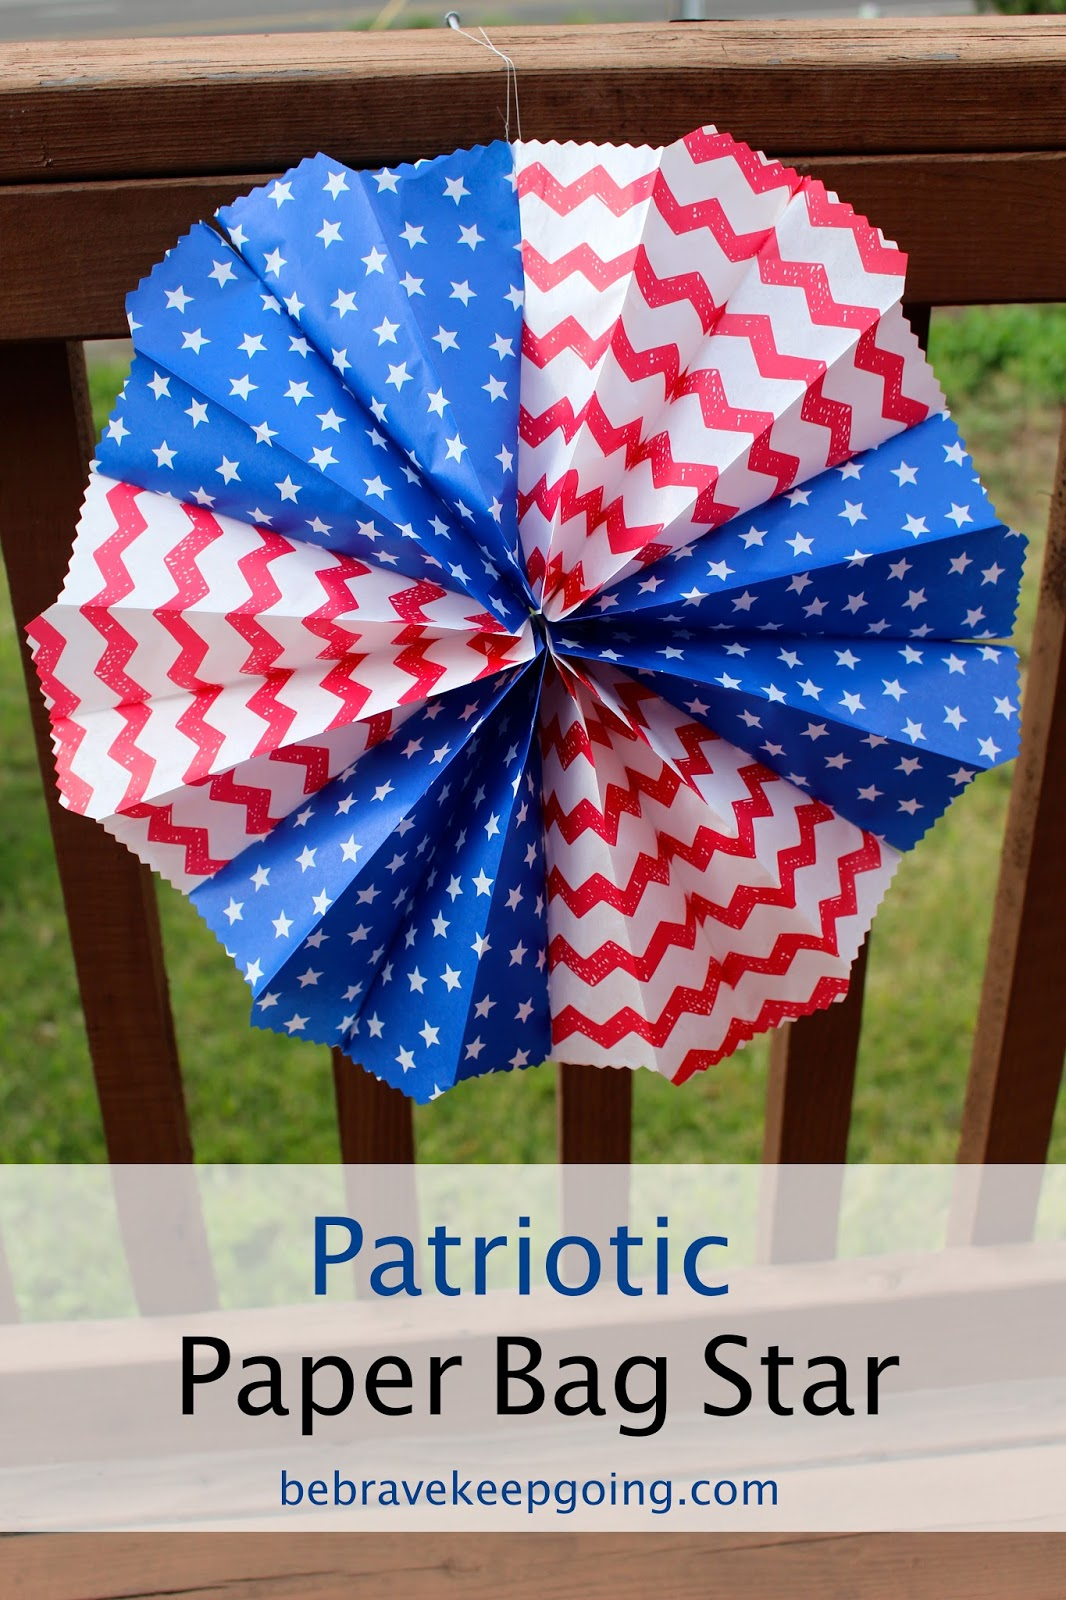 Be brave keep going easy patriotic paper bag star craft for Americana crafts to make